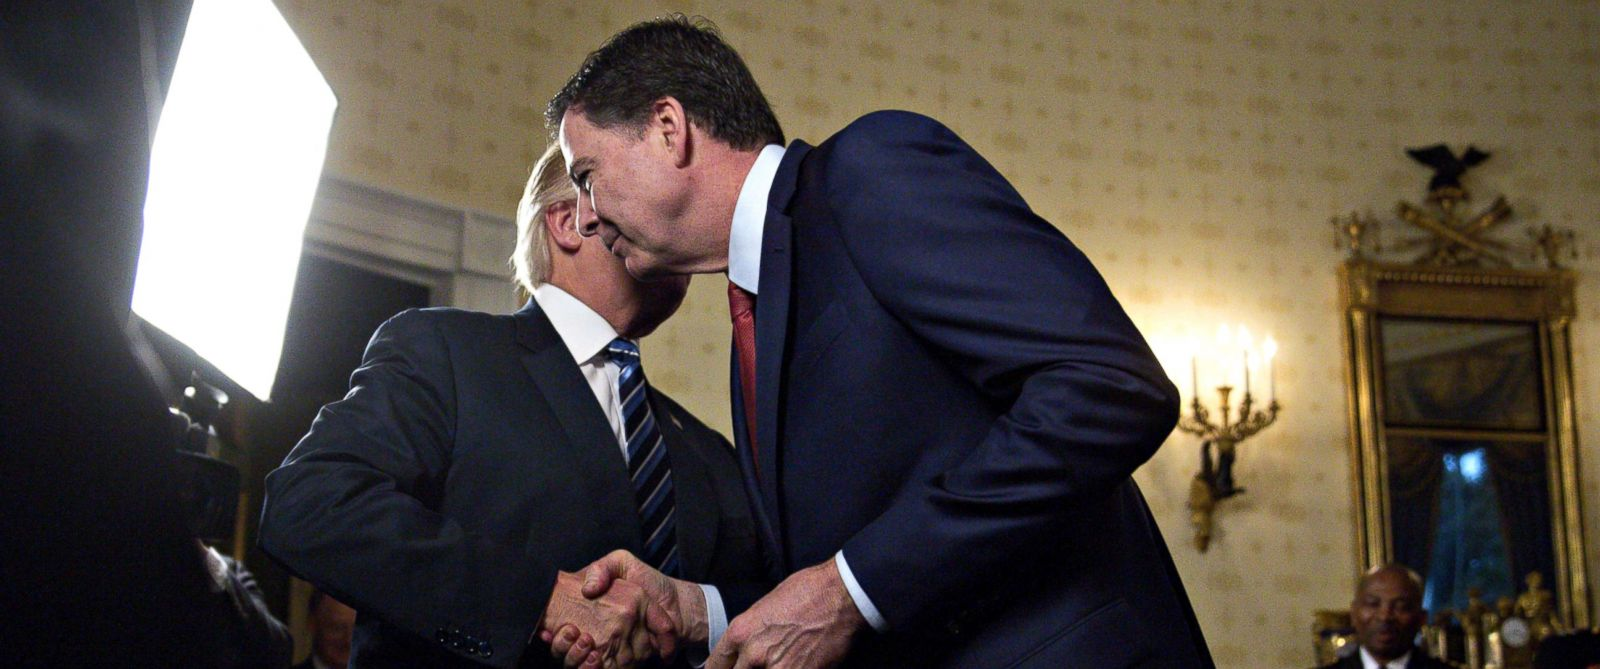 Image result for IMAGES OF TRUMP AND COMEY